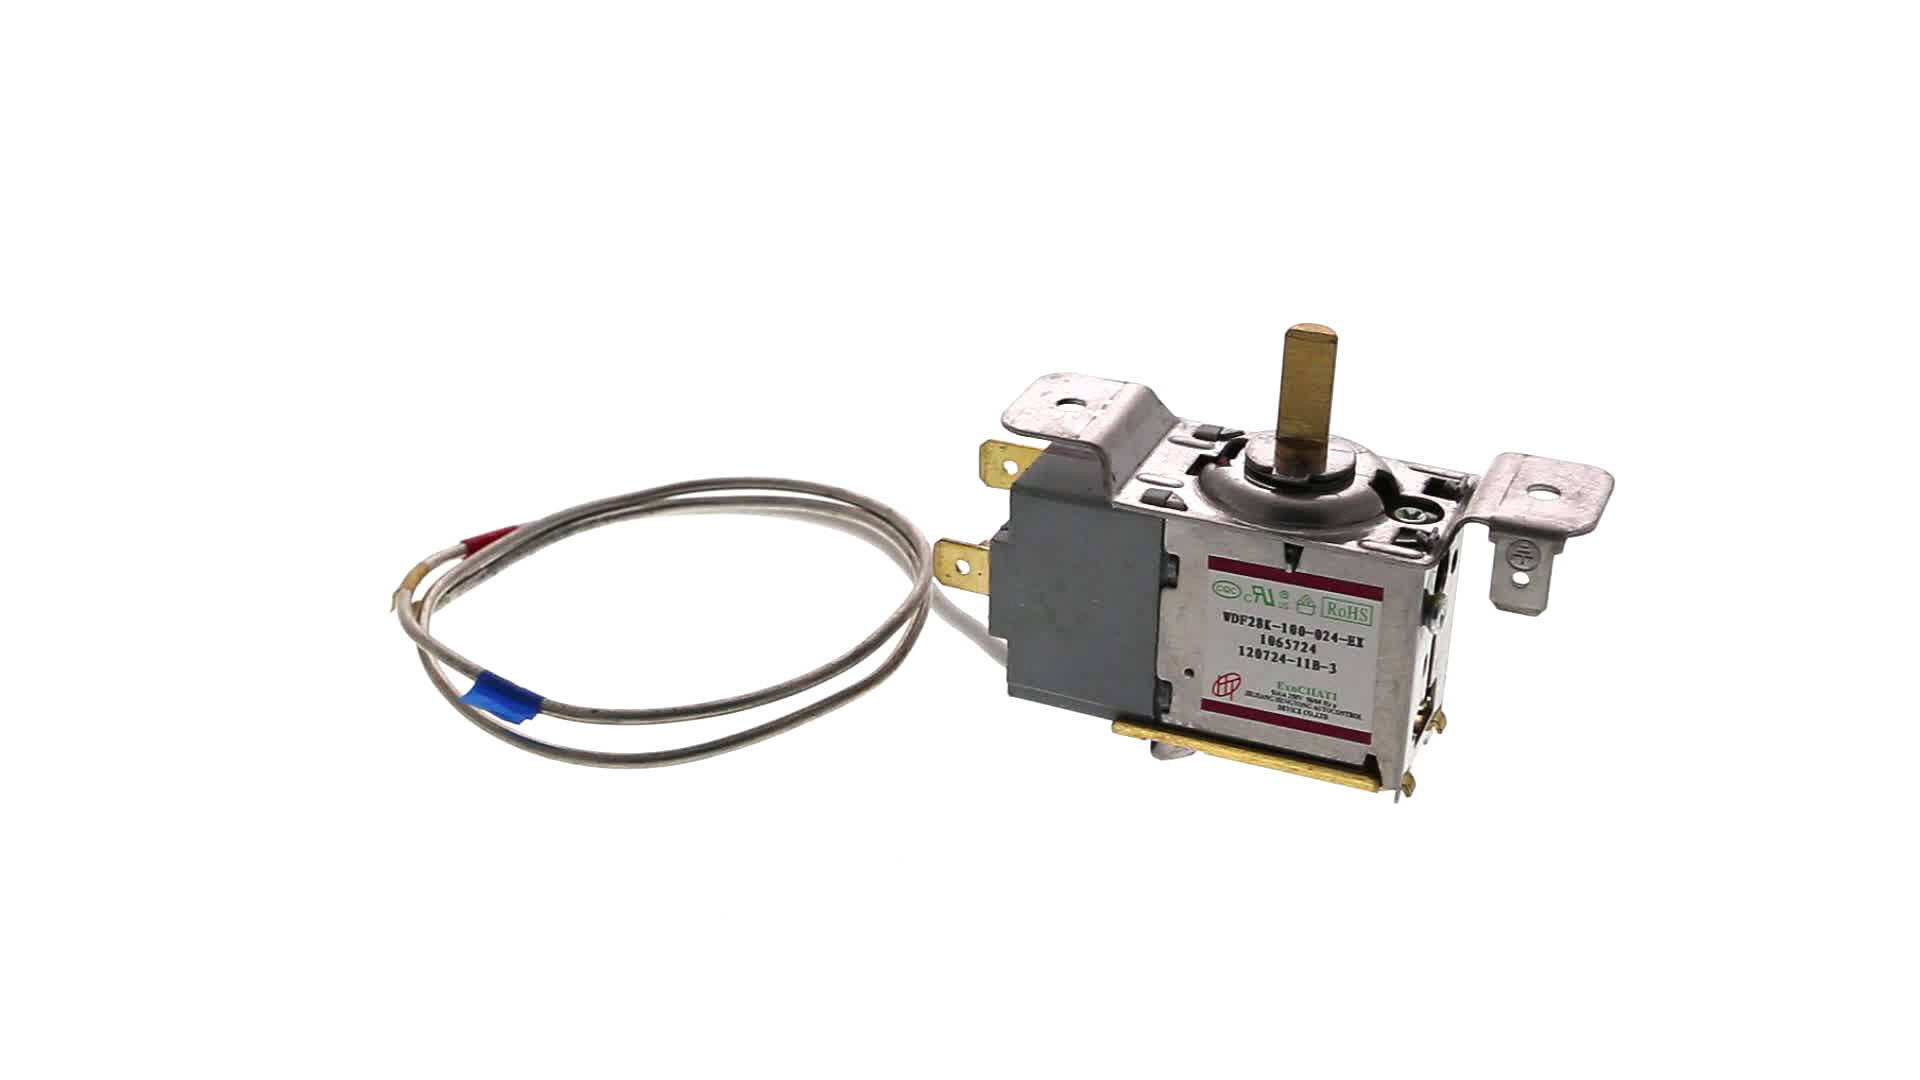 THERMOSTAT Froid WDFE28C-L4 1093322 BULBE=560mm